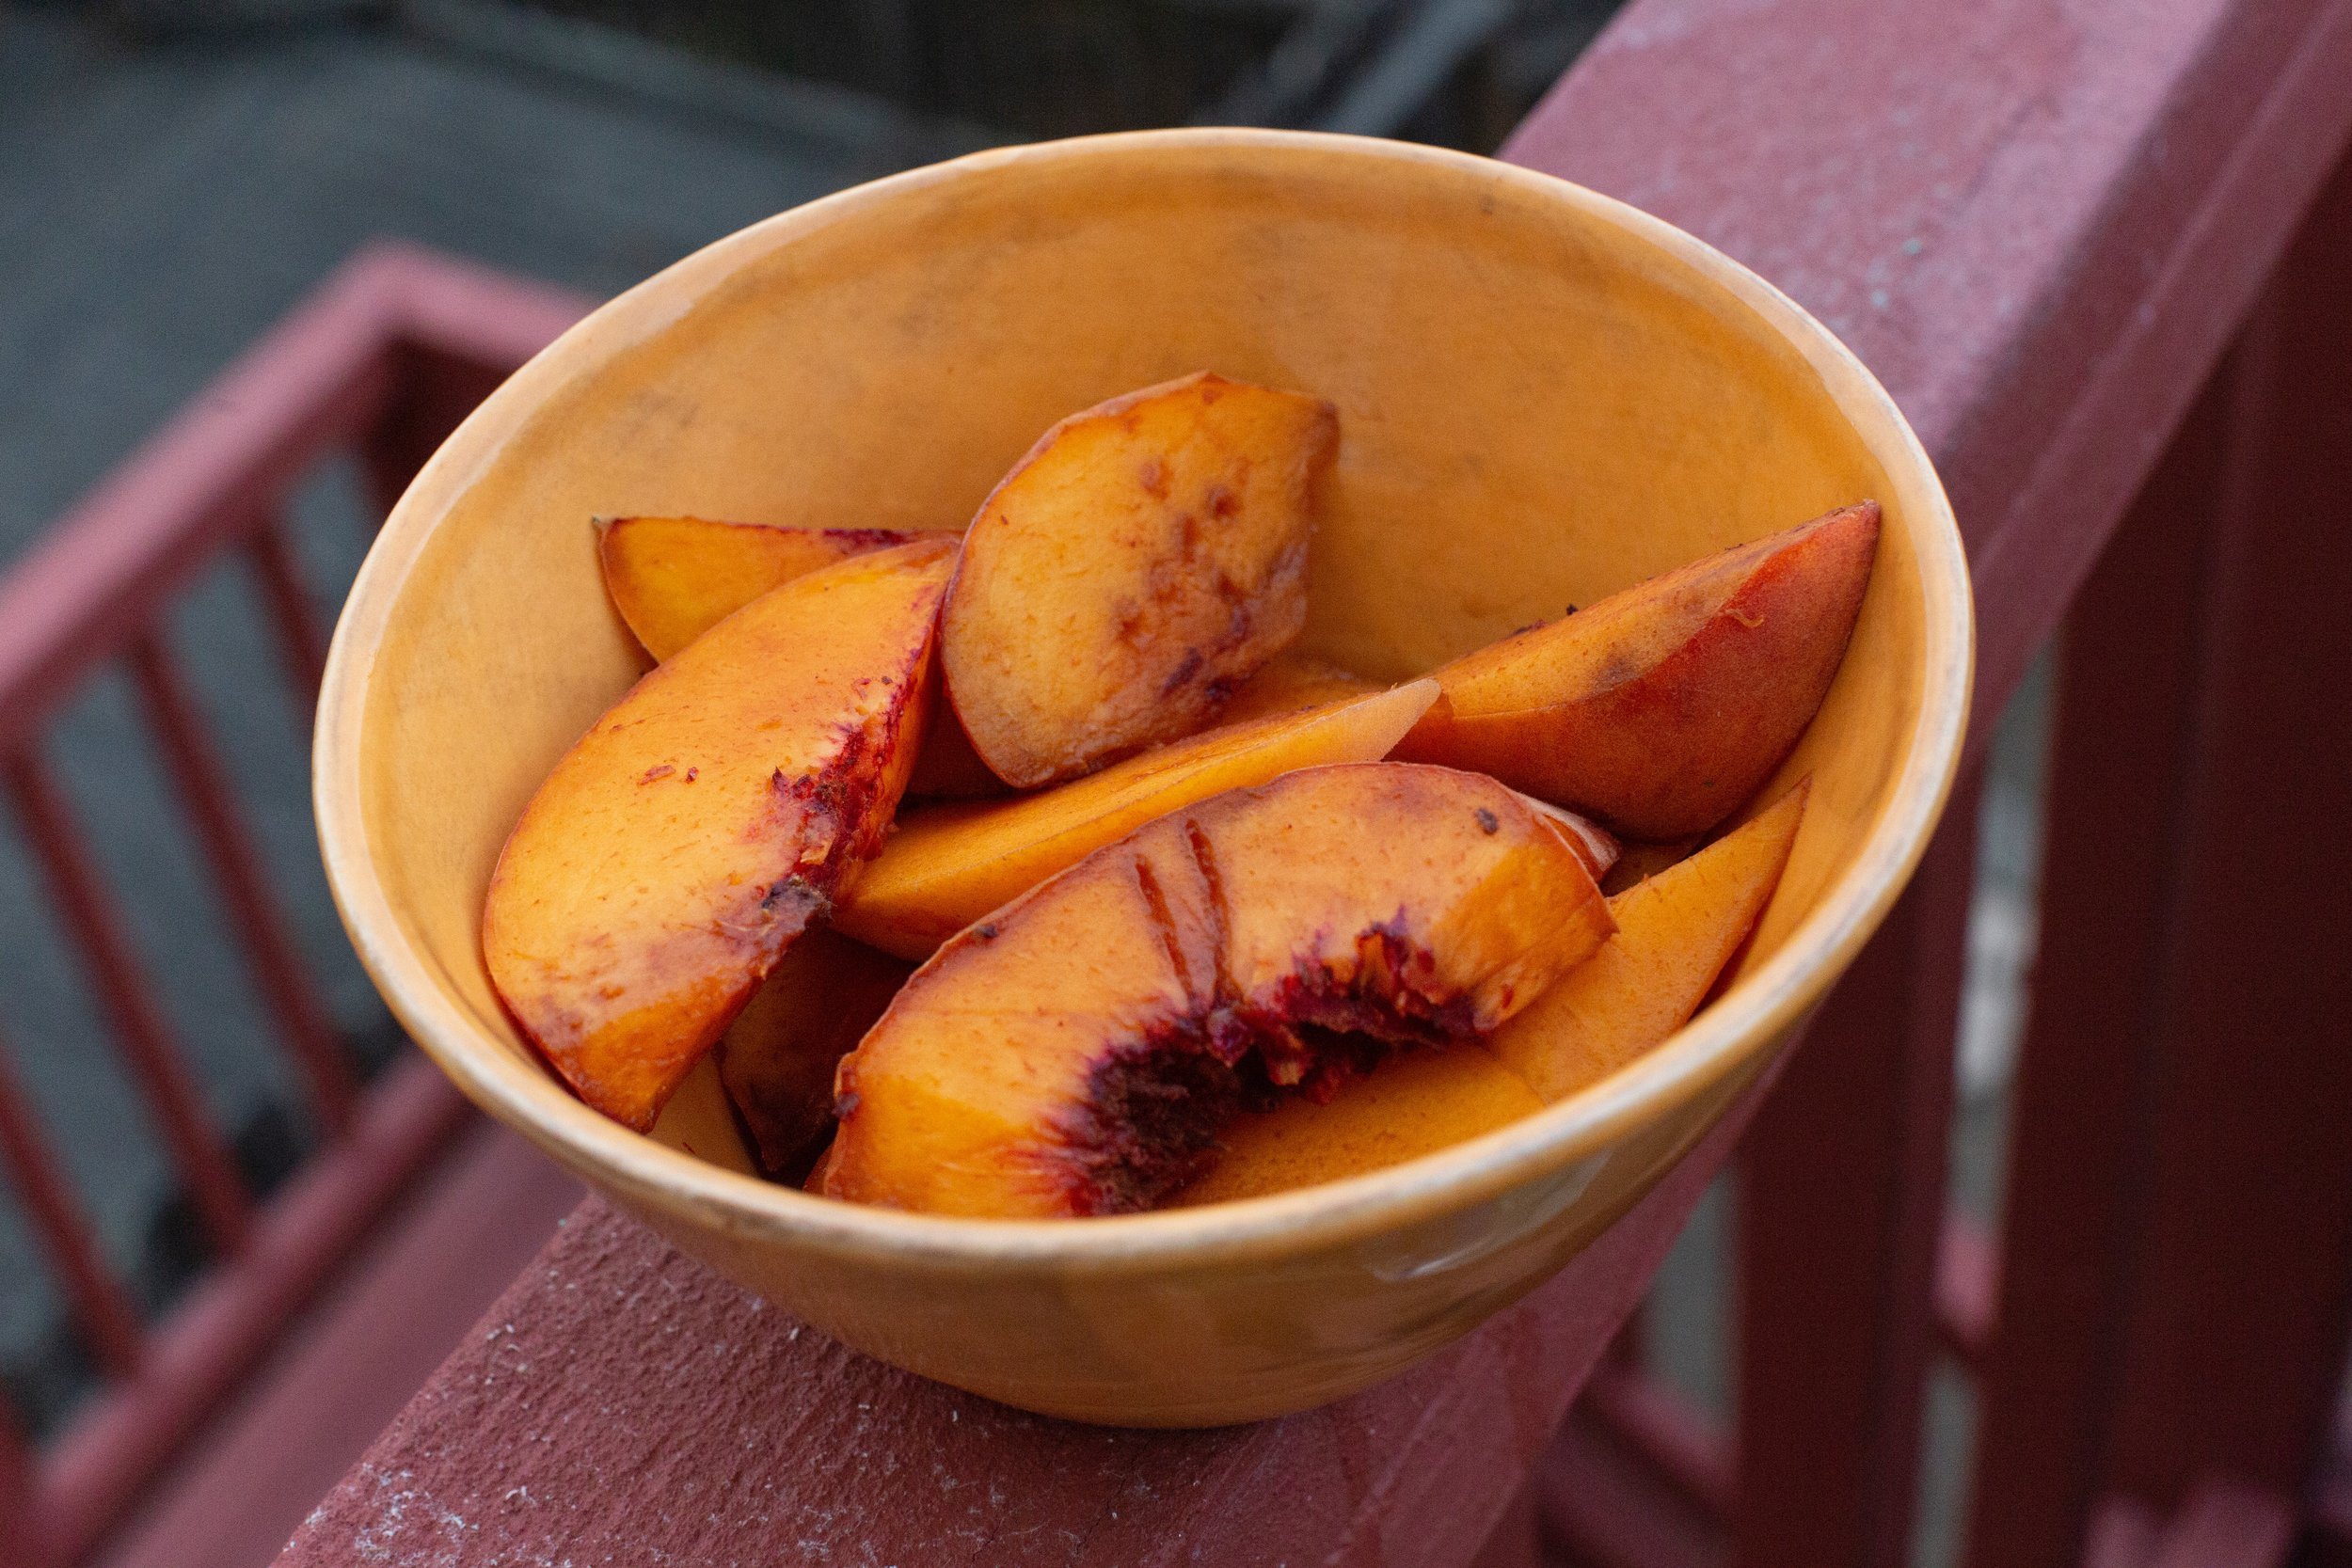 What to do with peaches - Besides cut em and eat em?